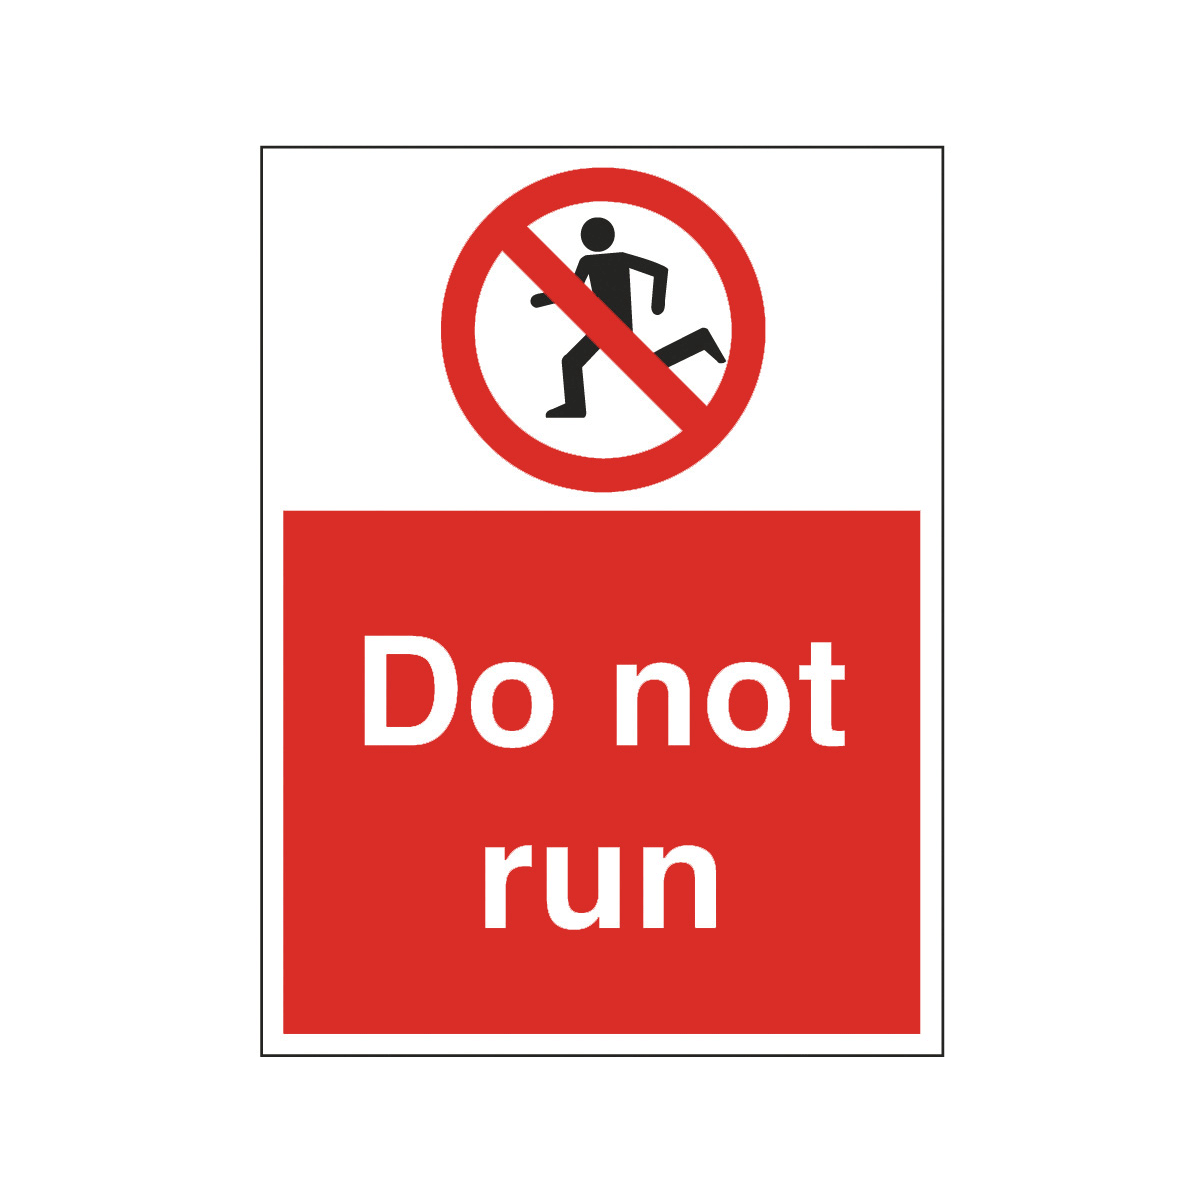 Do Not Run Safety Signs Symbols   Free Cliparts That You Can